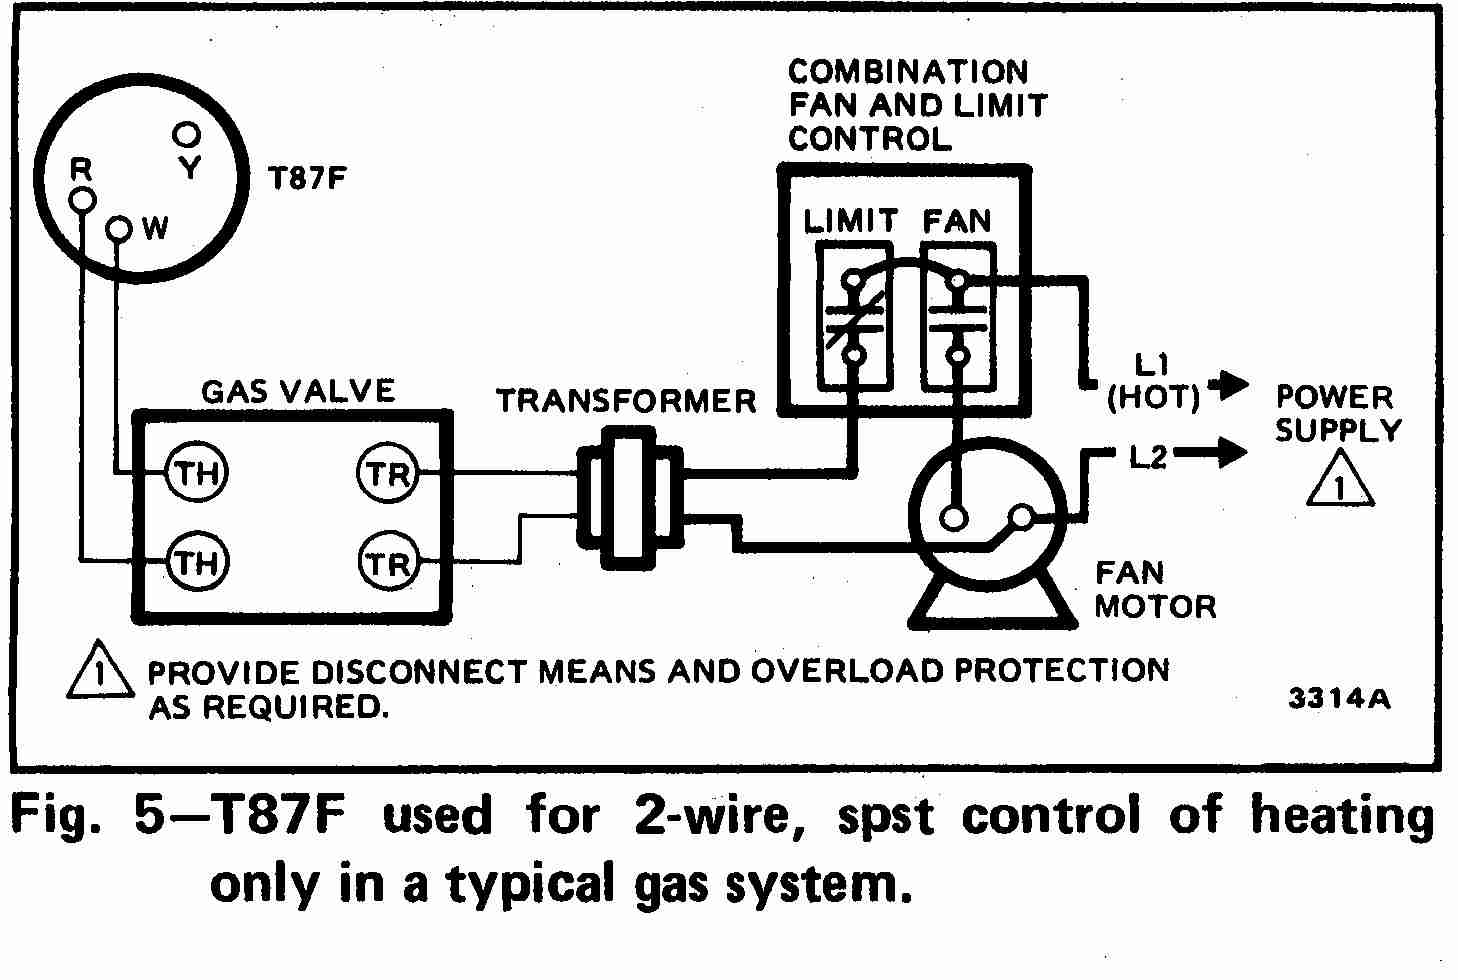 TT_T87F_0002_2Wg_DJF room thermostat wiring diagrams for hvac systems electric thermostat wiring diagram at metegol.co